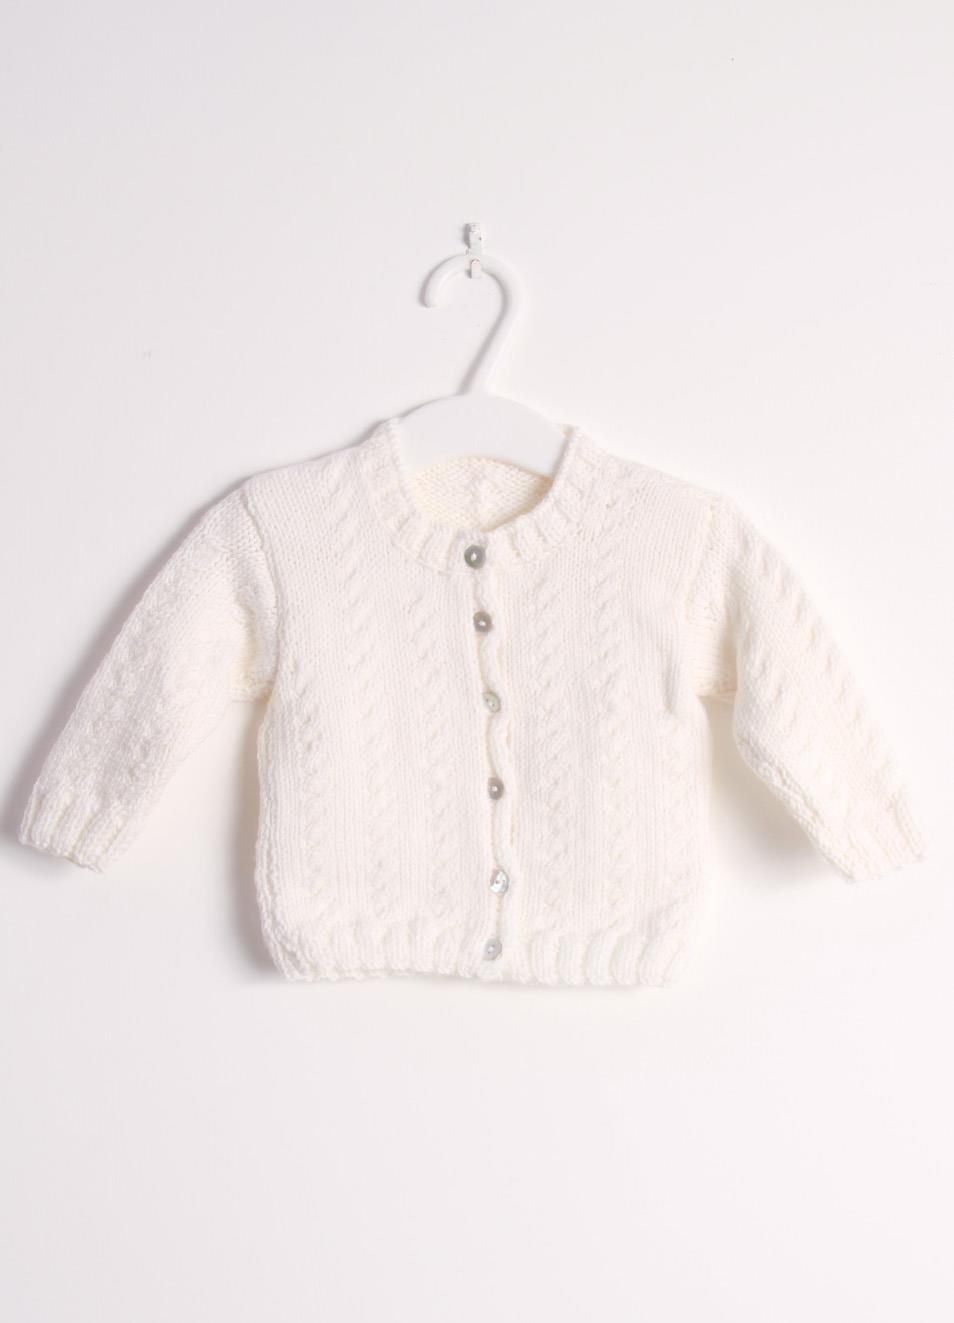 new styles a3dc2 0ae01 Wool cardigan sweater for new born